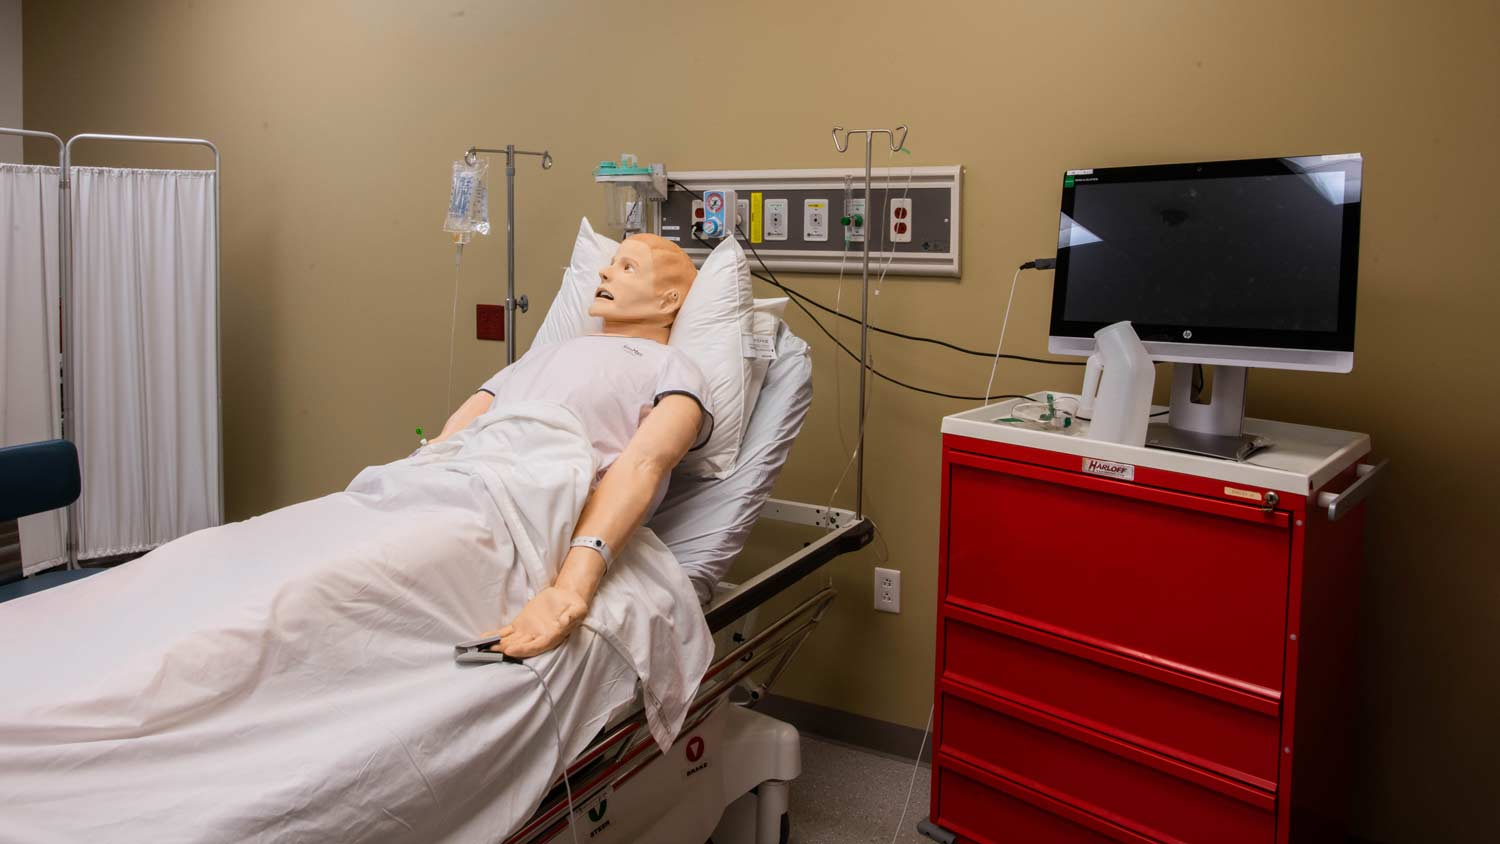 Simulation lab with a medical dummy on a patient's bed